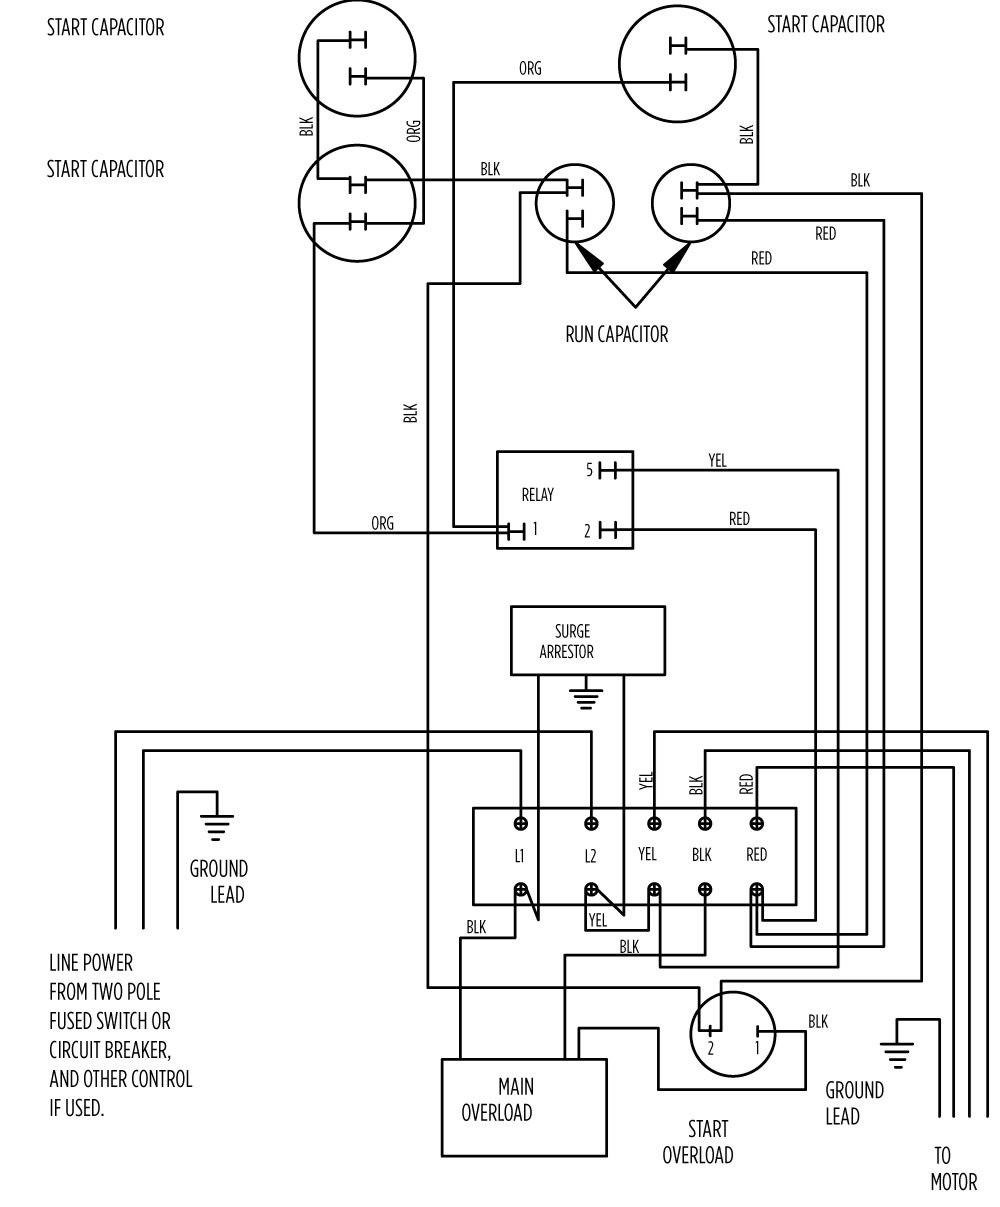 10 Switch Box Wiring Diagram Schematic Explore 1954 Cadillac Aim Manual Page 57 Single Phase Motors And Controls Motor Rh Franklinwater Com Diagrams Headlight For 1951 Olds